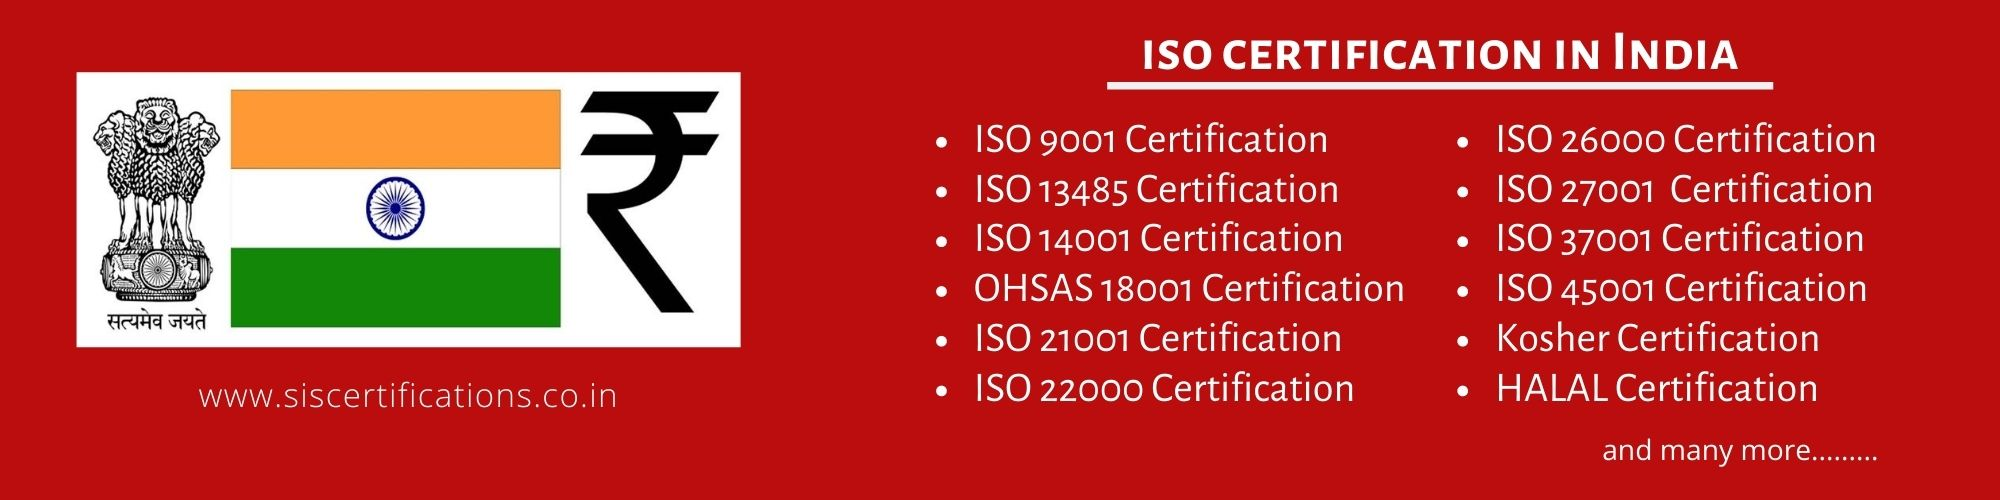 ISO Certification in India , process ISO Certification in India